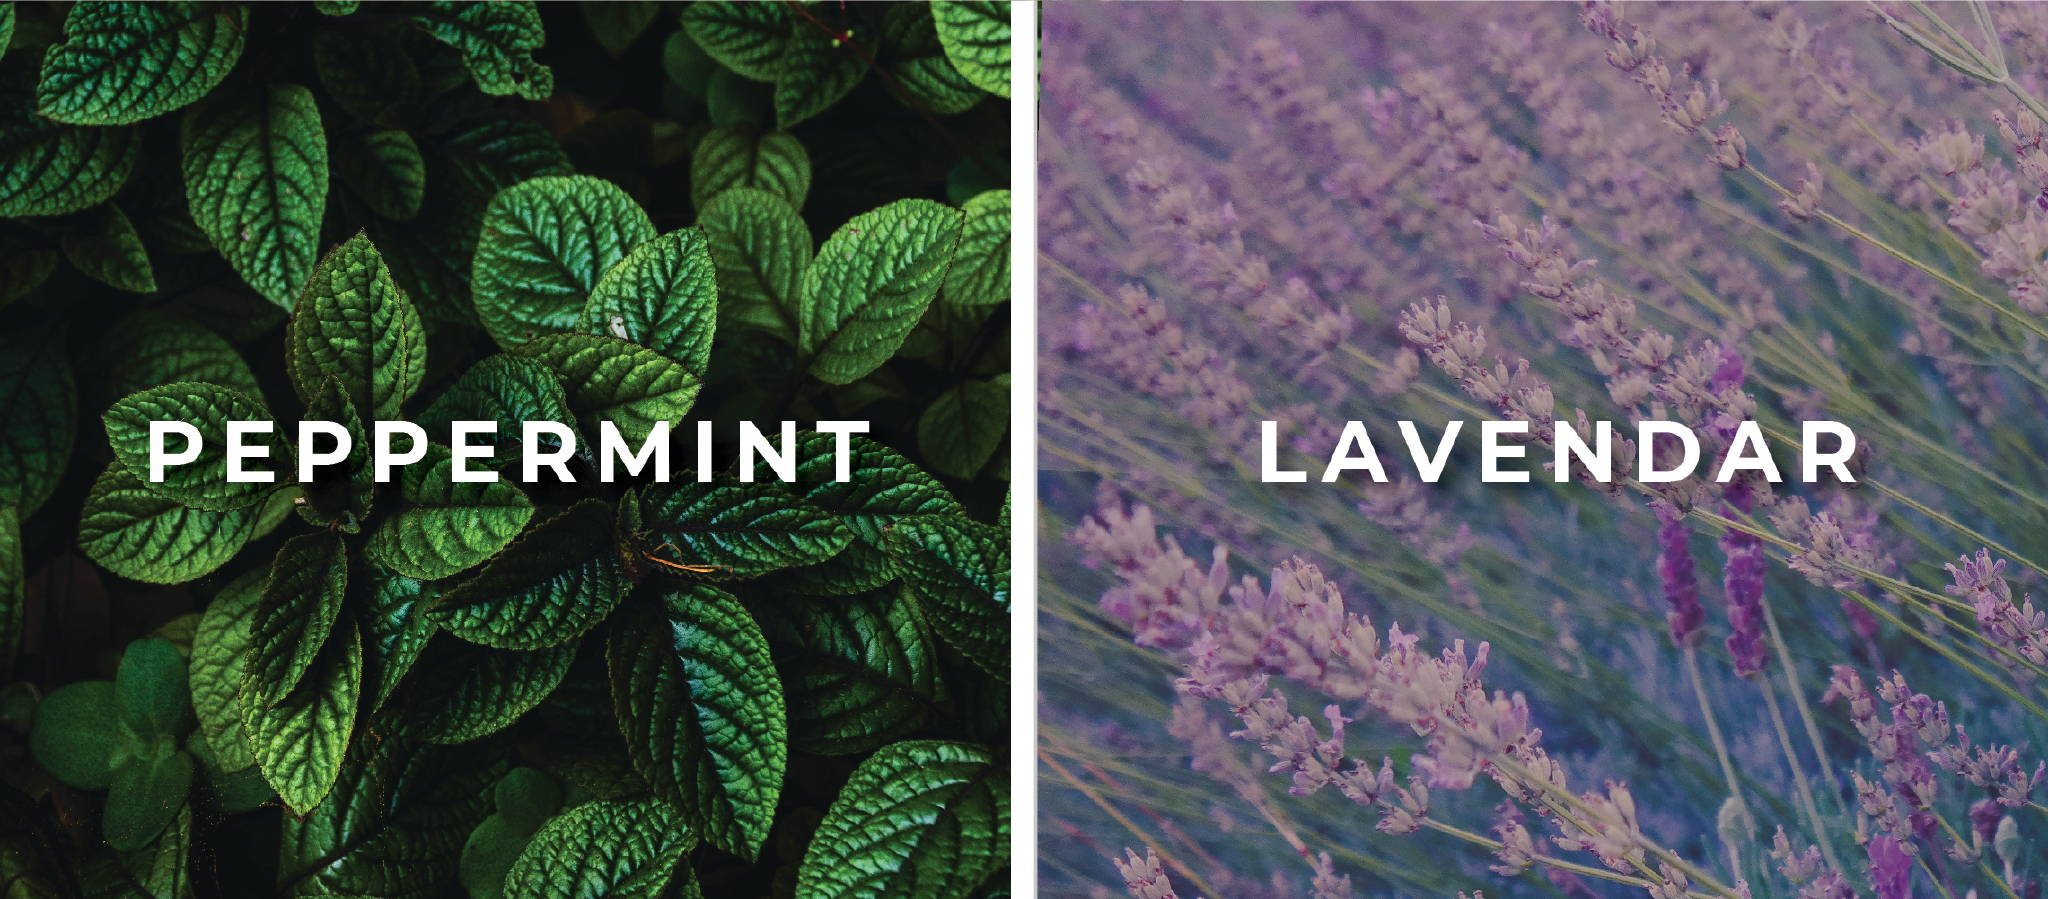 Caffeine-free Peppermint and Lavendar Tea